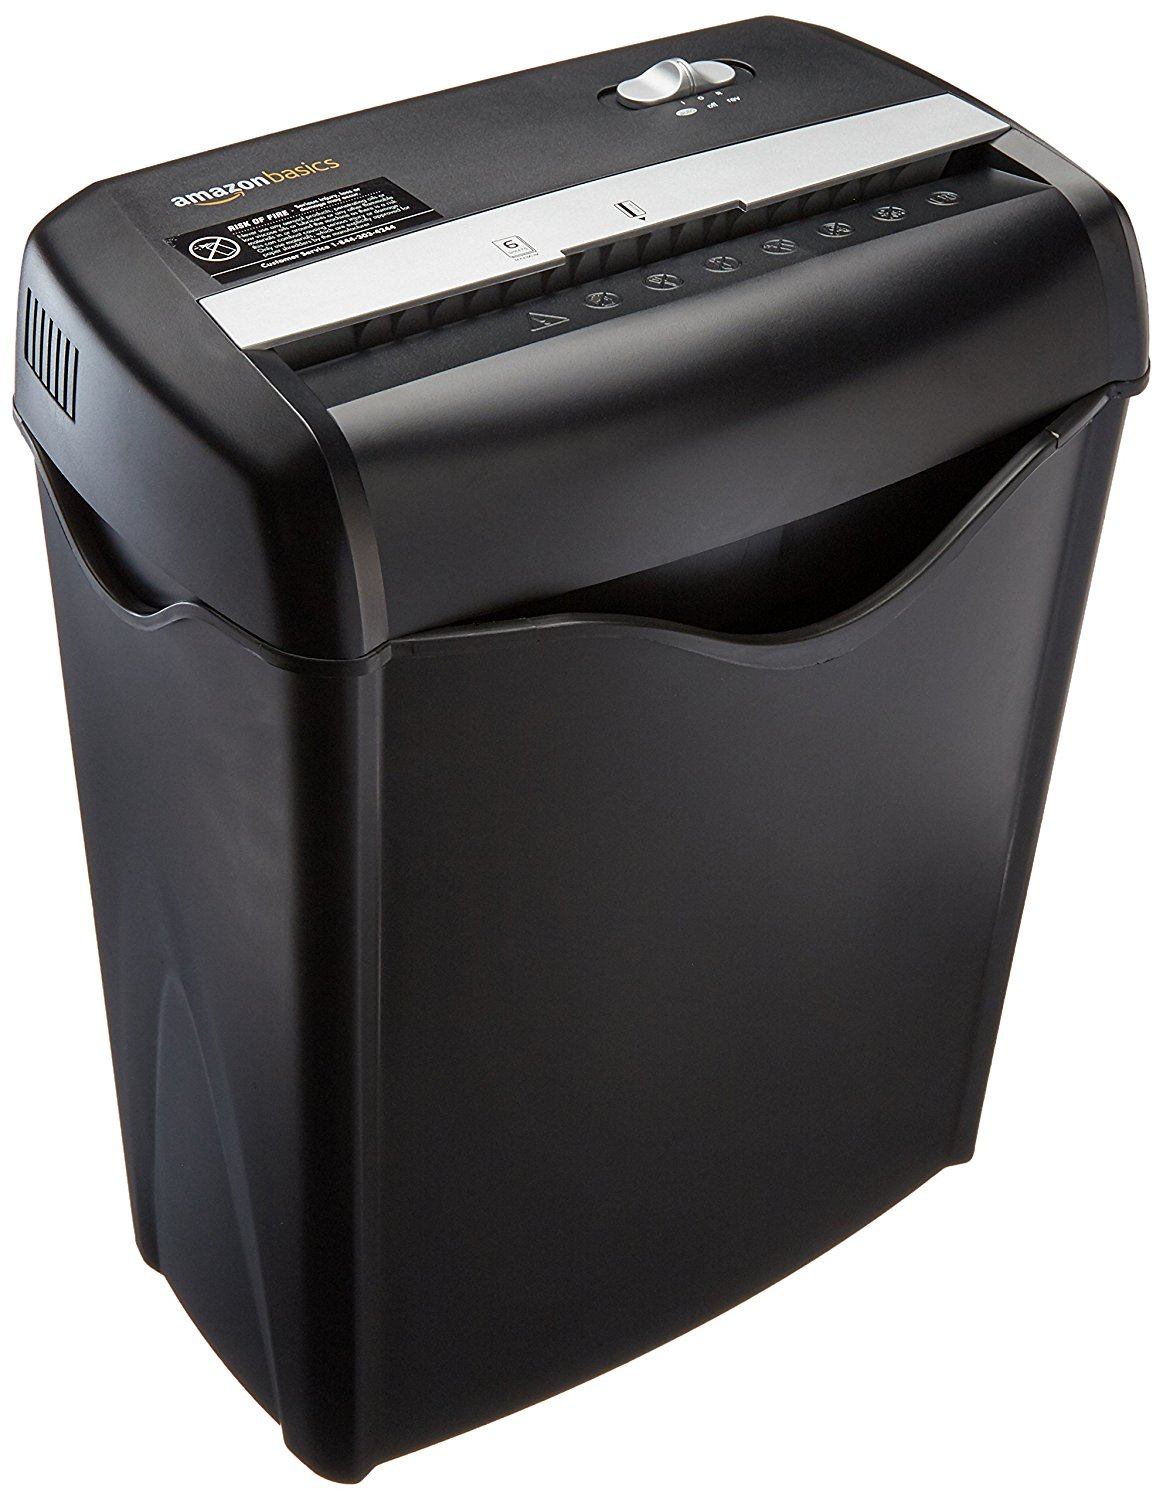 c3410cf8 Amazon Prime Members: AmazonBasics 6-Sheet Cross-Cut Paper and Credit Card  Shredder Only $23.74 Shipped